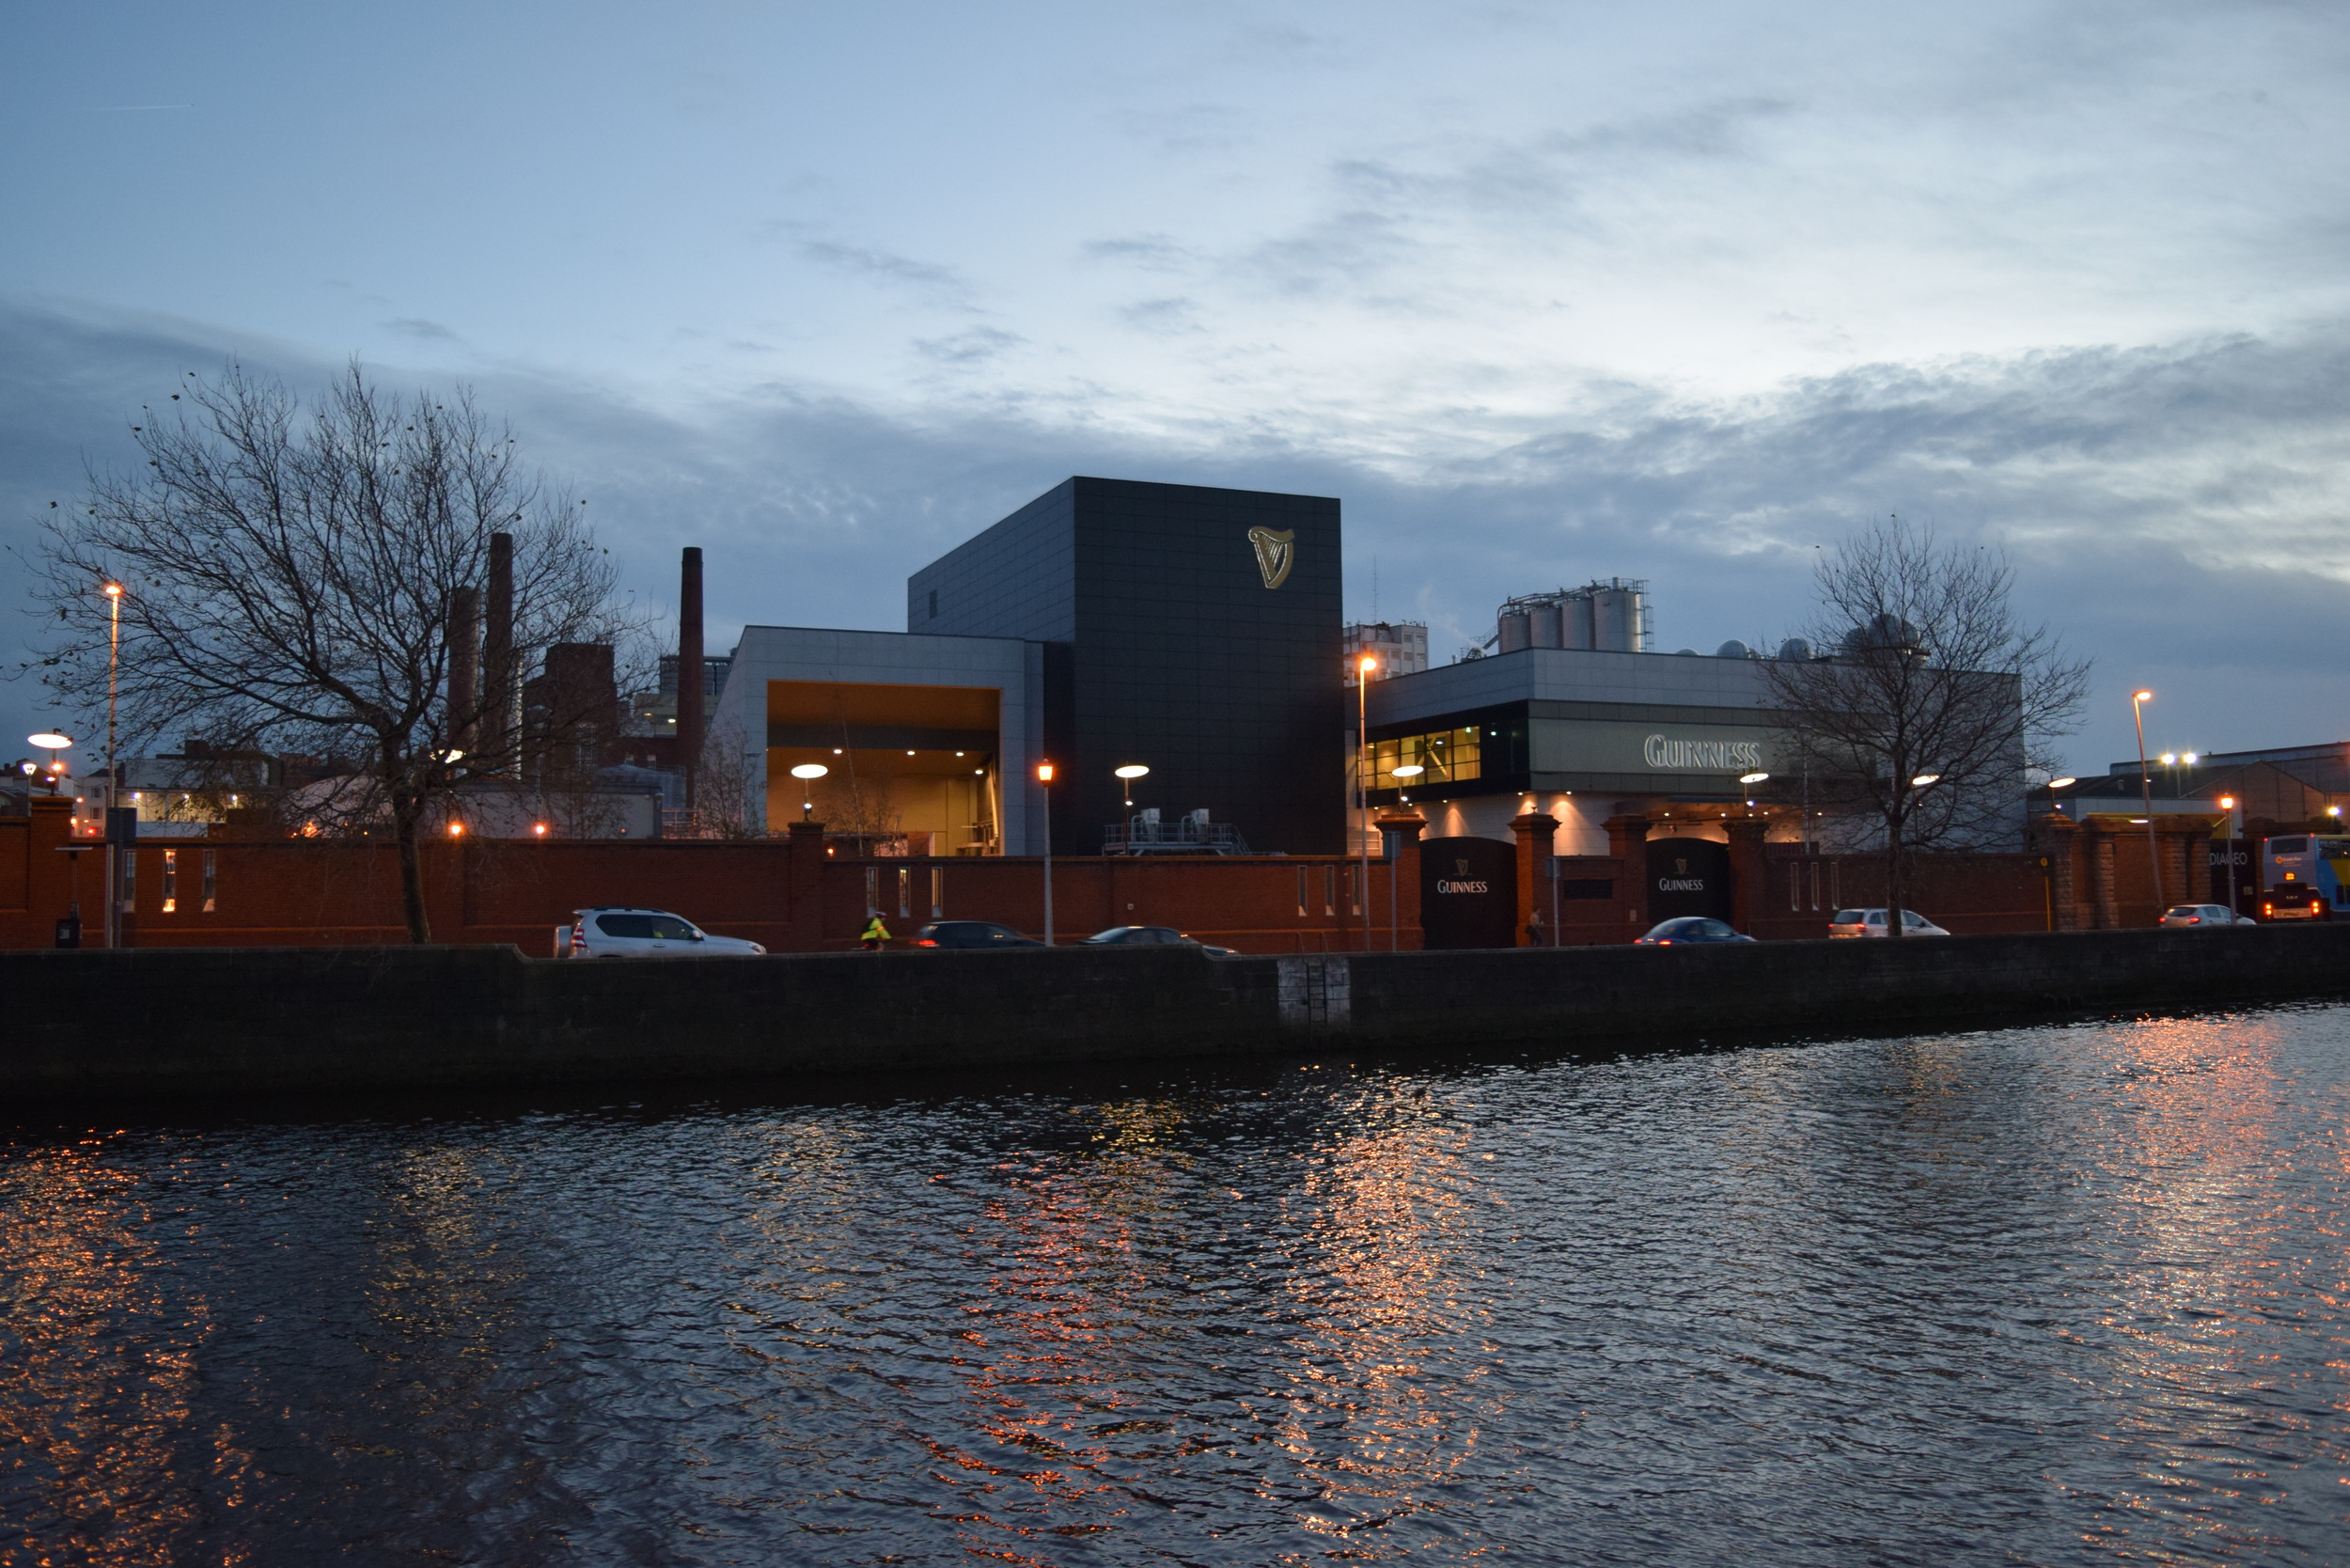 A portion of the Guinness Brewery as viewed from the River Liffey